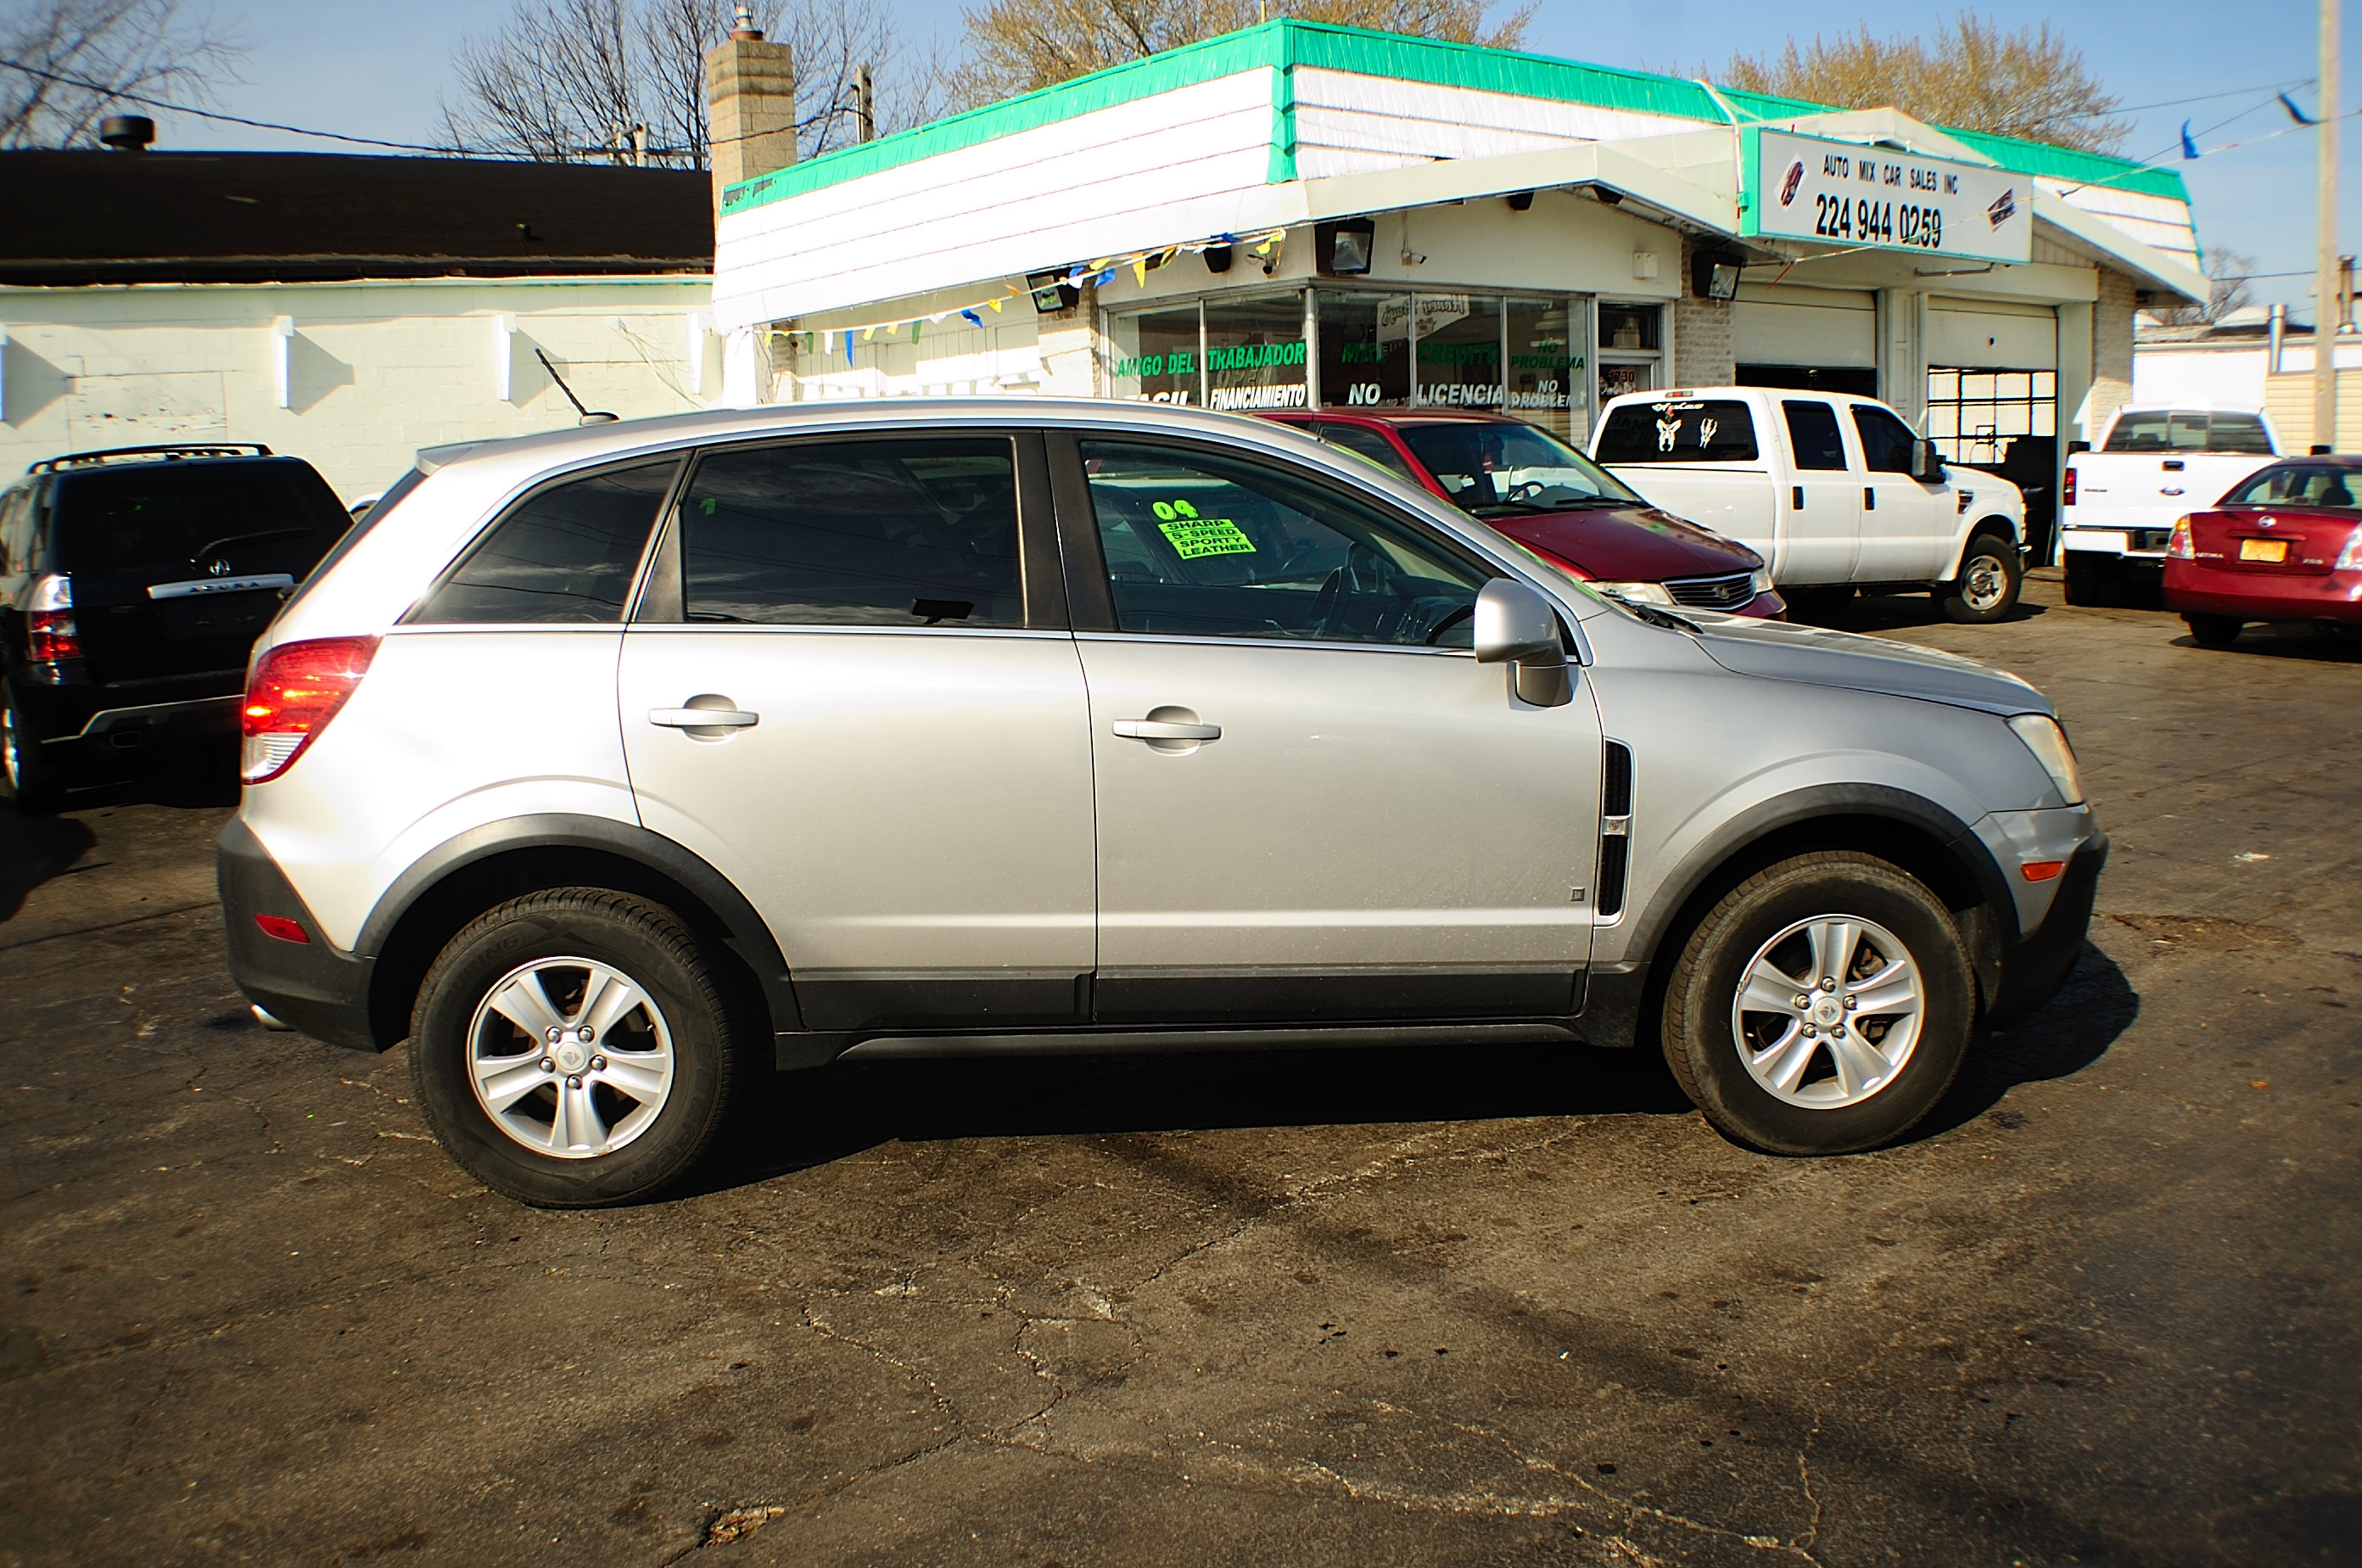 2008 Saturn Vue XE 4Dr Silver SUV used car sale Bannockburn Barrington Beach Park